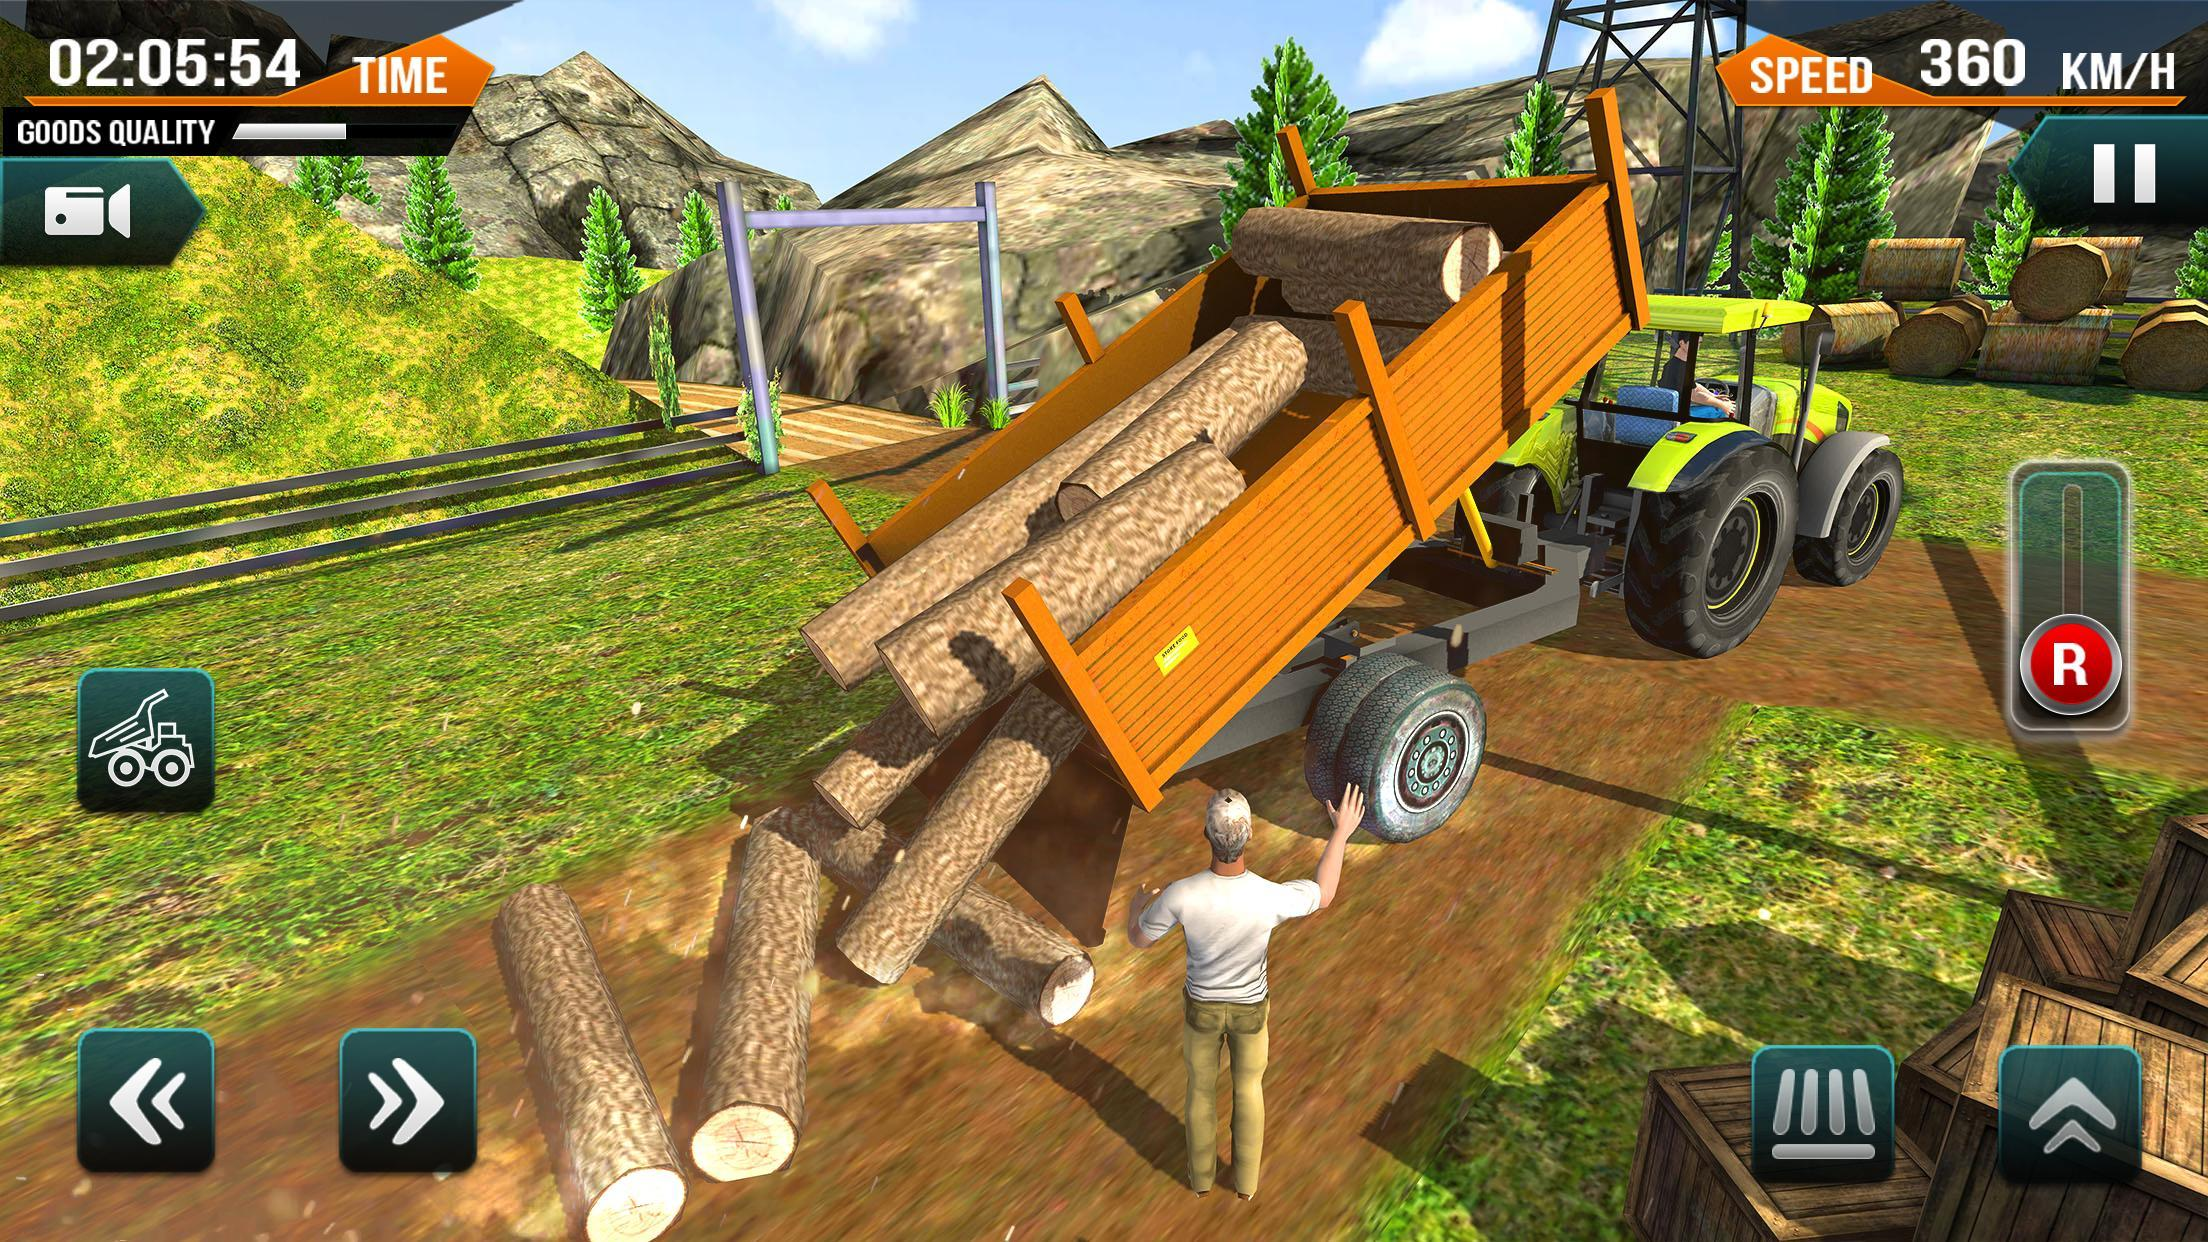 Offroad Tractor Farming Simulator for Android - APK Download